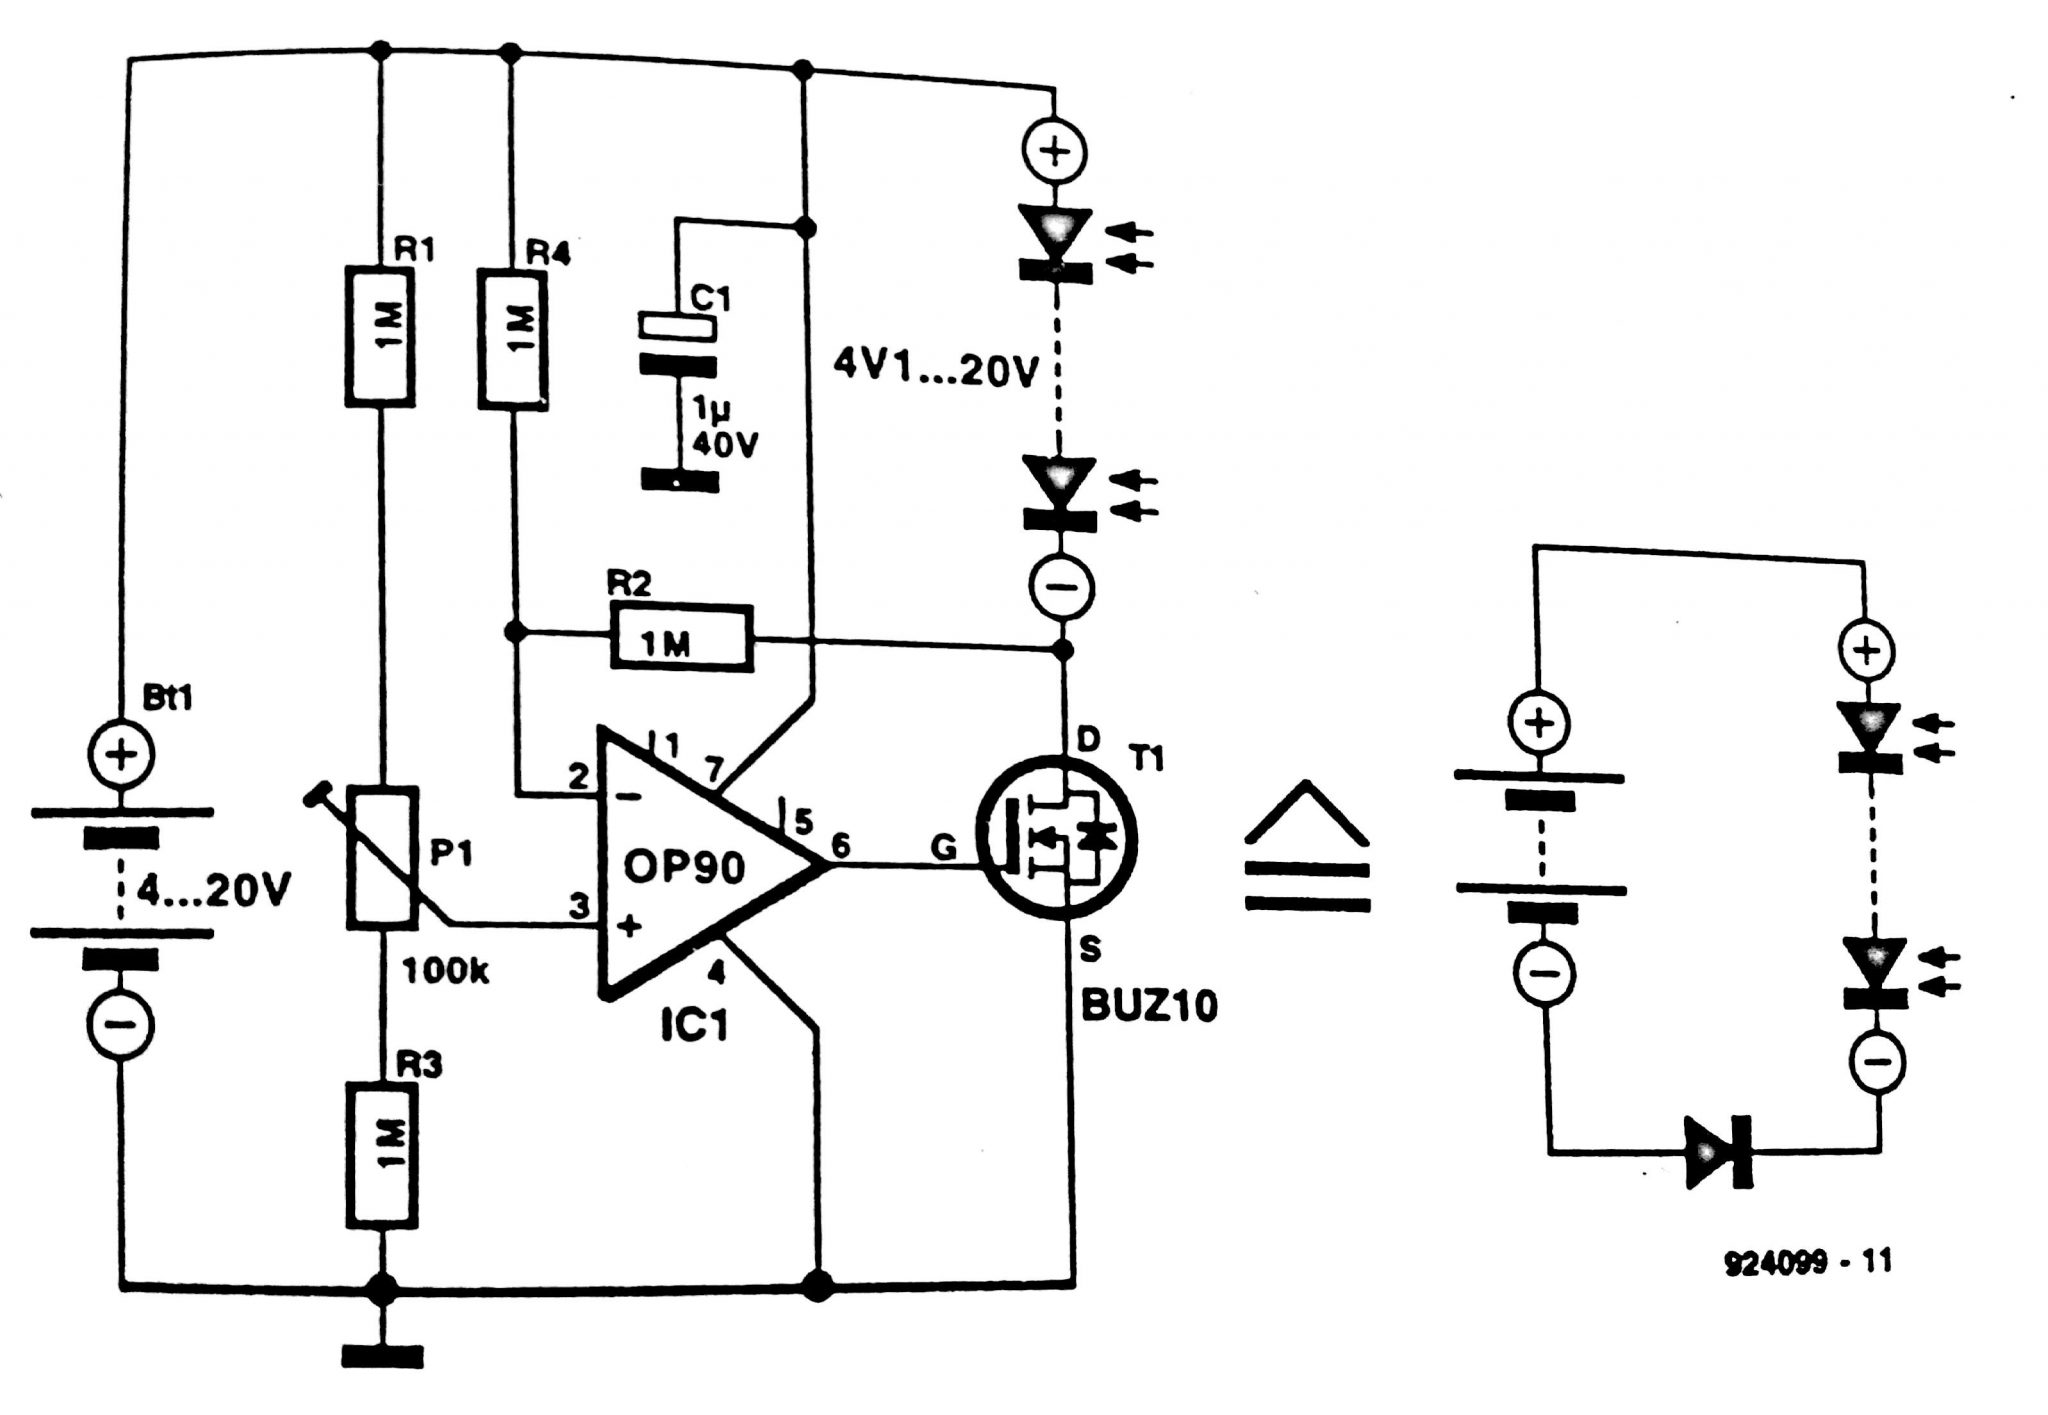 wiring diagram also yamaha zuma harness free yamaha zuma